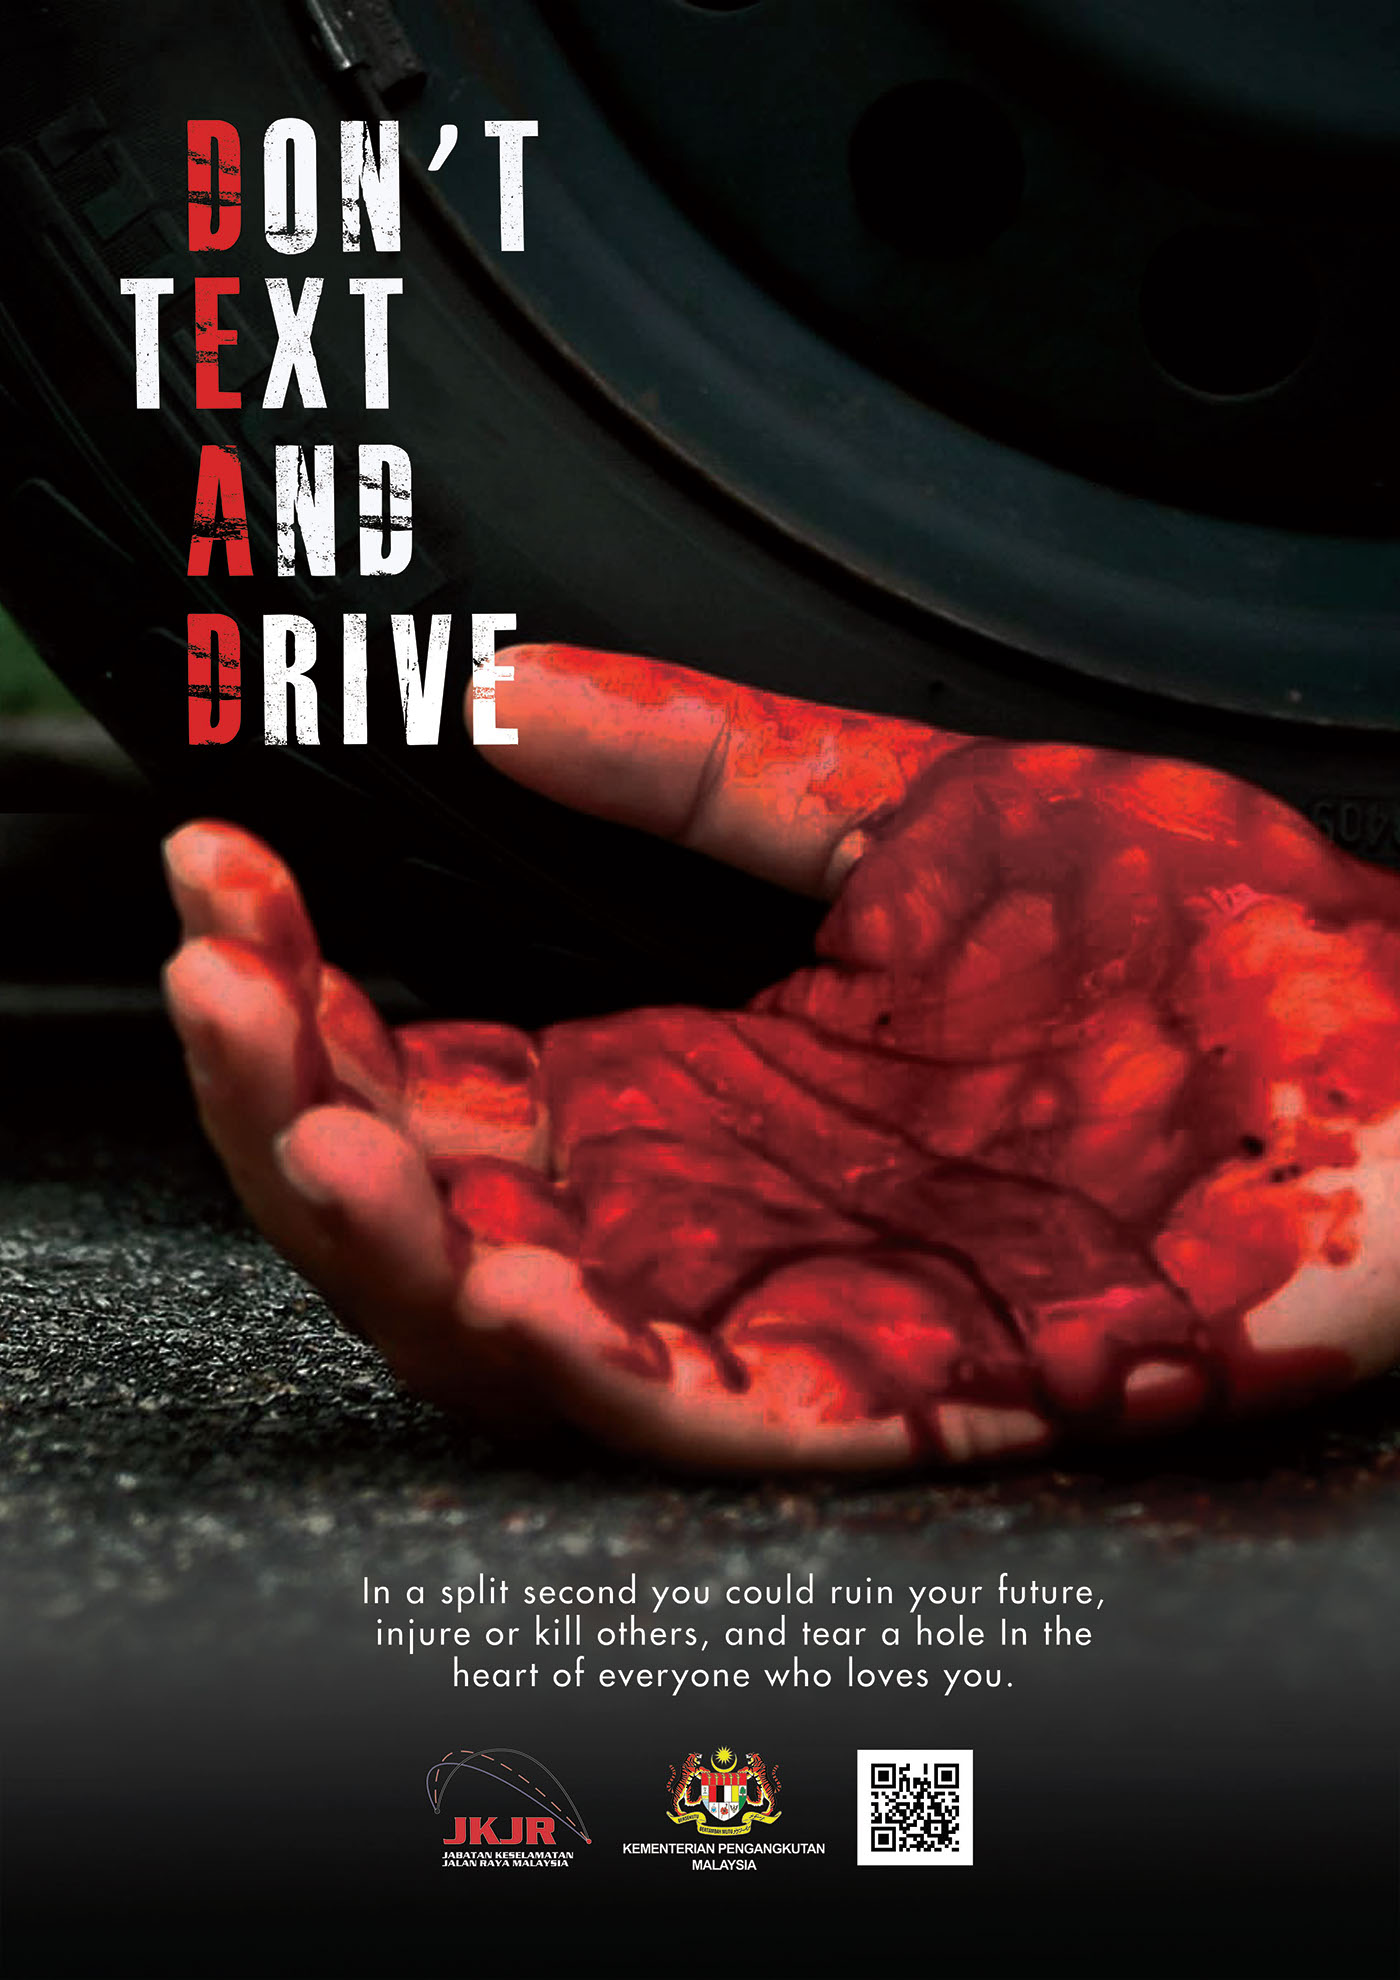 texting and driving psa